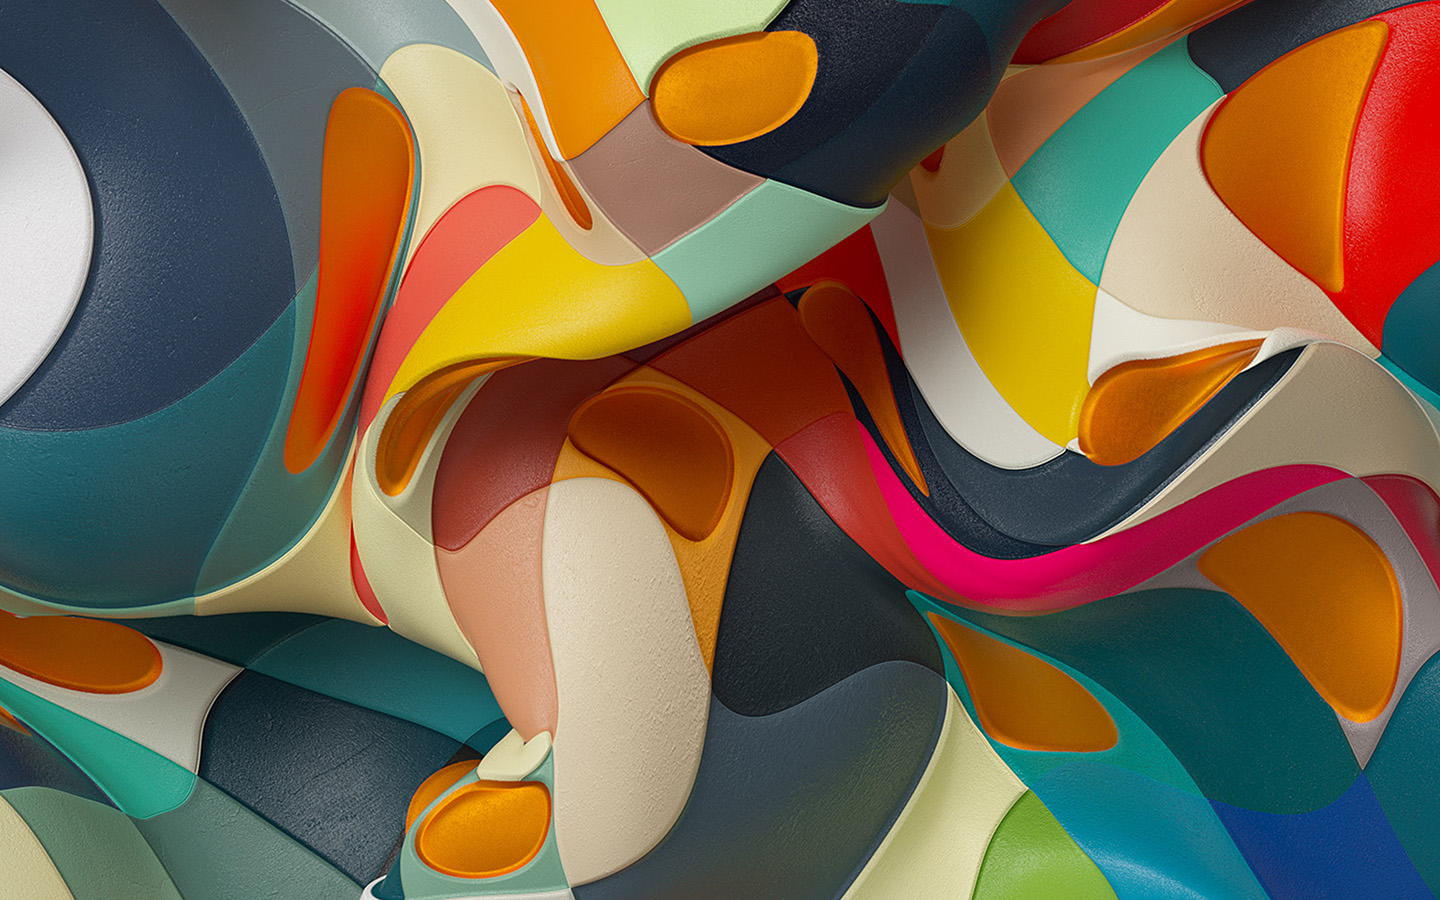 wc54-3d-abstract-color-dannyivan-pattern-background-wallpaper